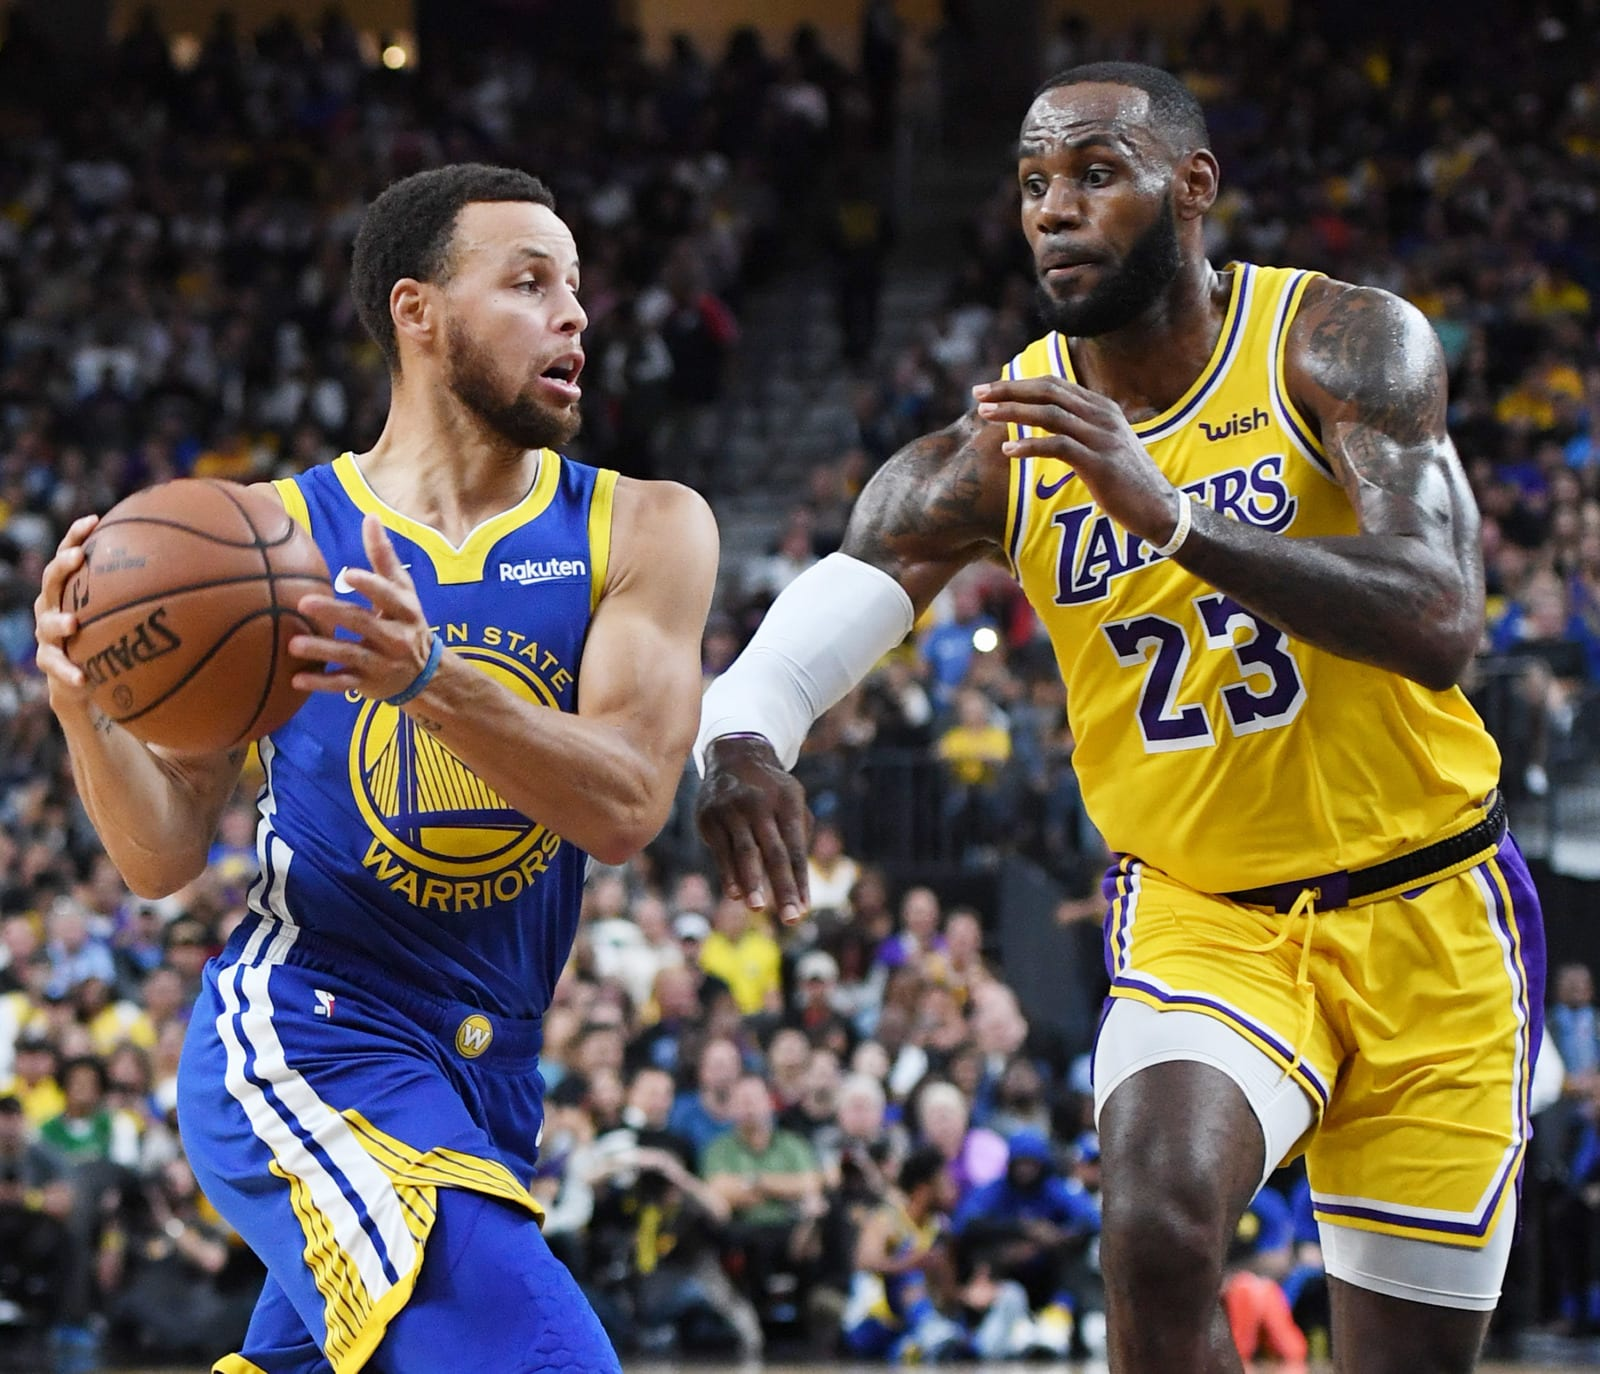 Steph Curry and LeBron James could go up against each other in the 2021 NBA Play-In Tournament